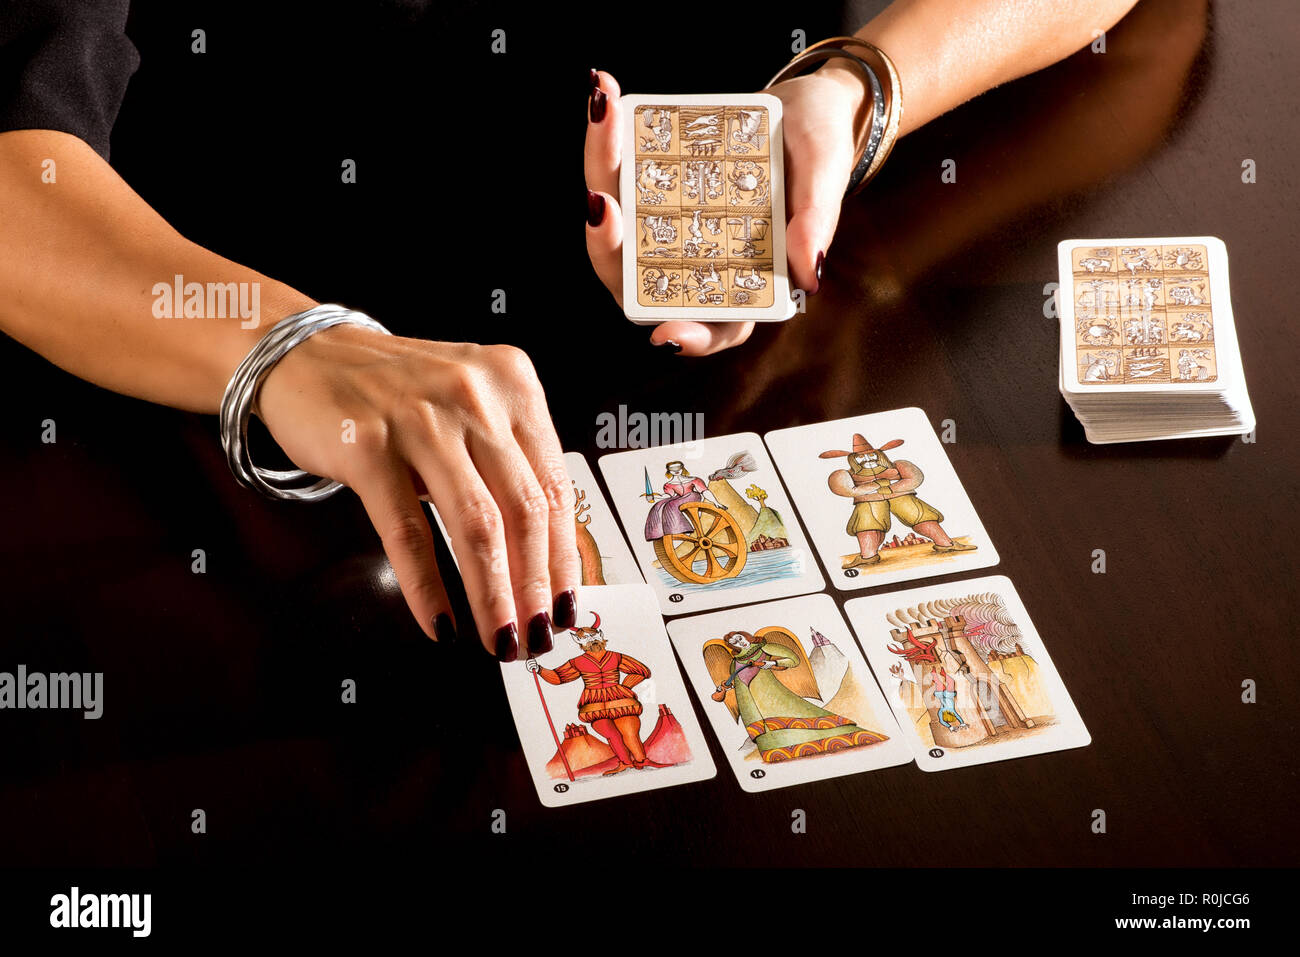 Fortune teller reading a deck of pictorial symbolic Tarot Cards in a close up on her hands laying them out on a table to make her prophesy Stock Photo